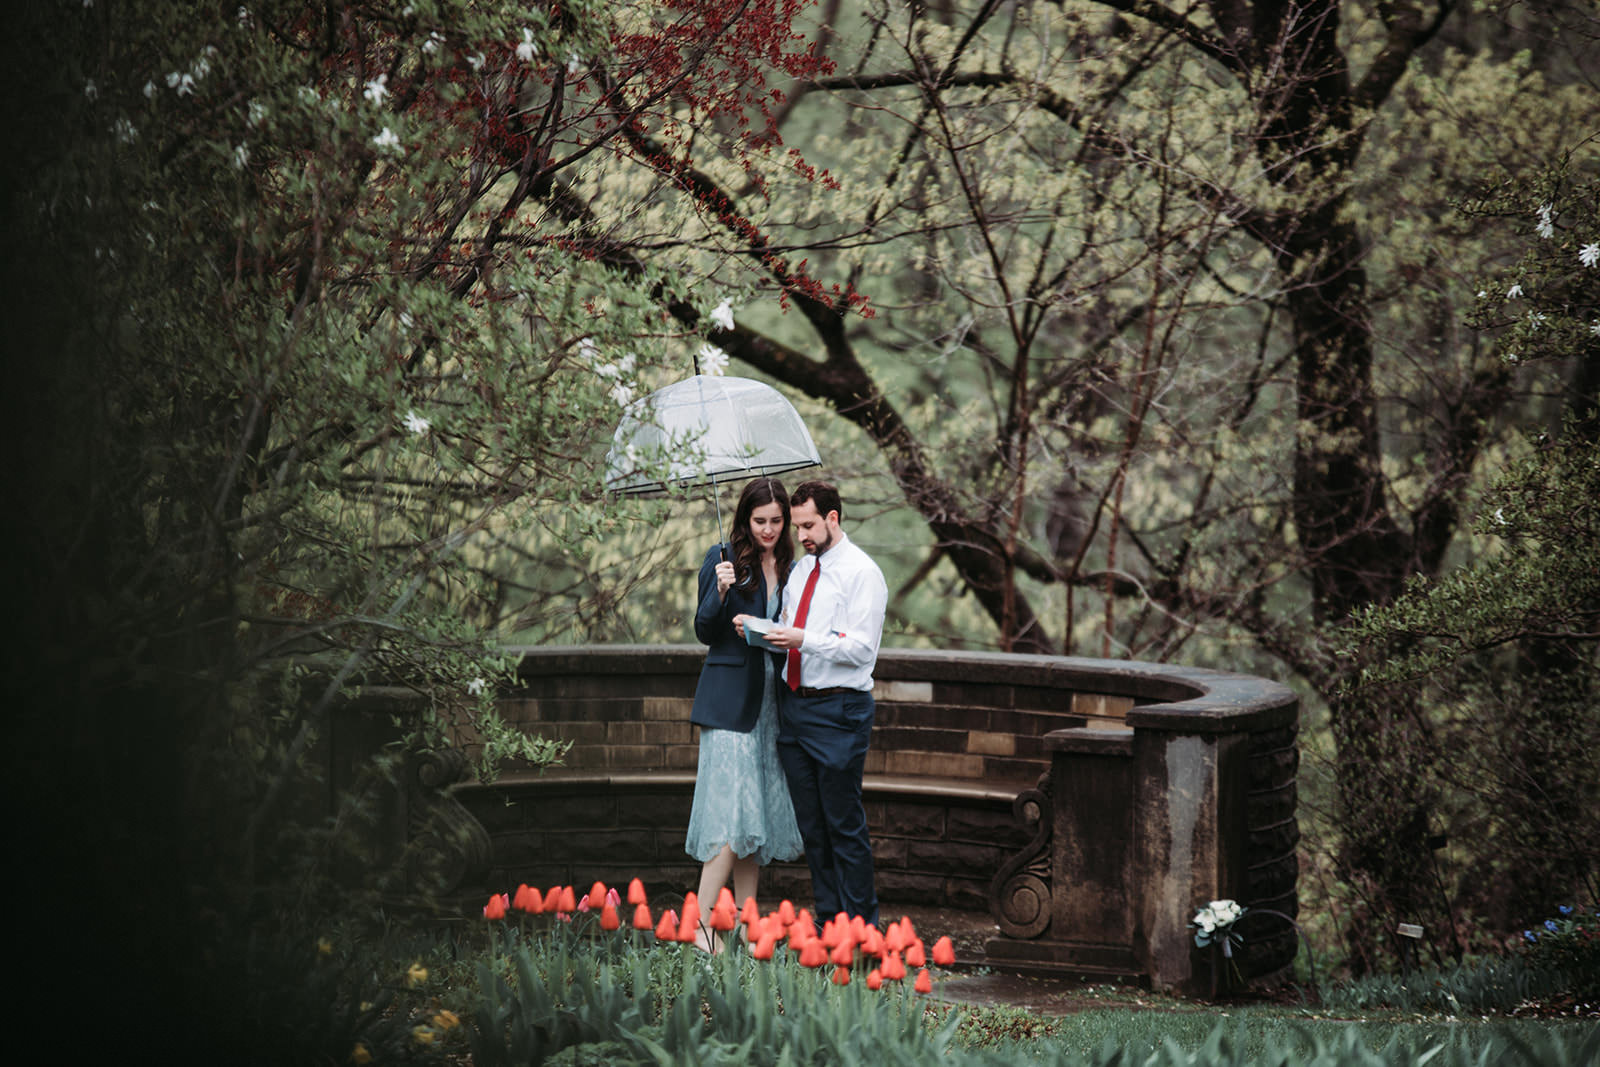 Newfields_Indianapolis_Spring_Proposal_Engagement_Session-5.jpg